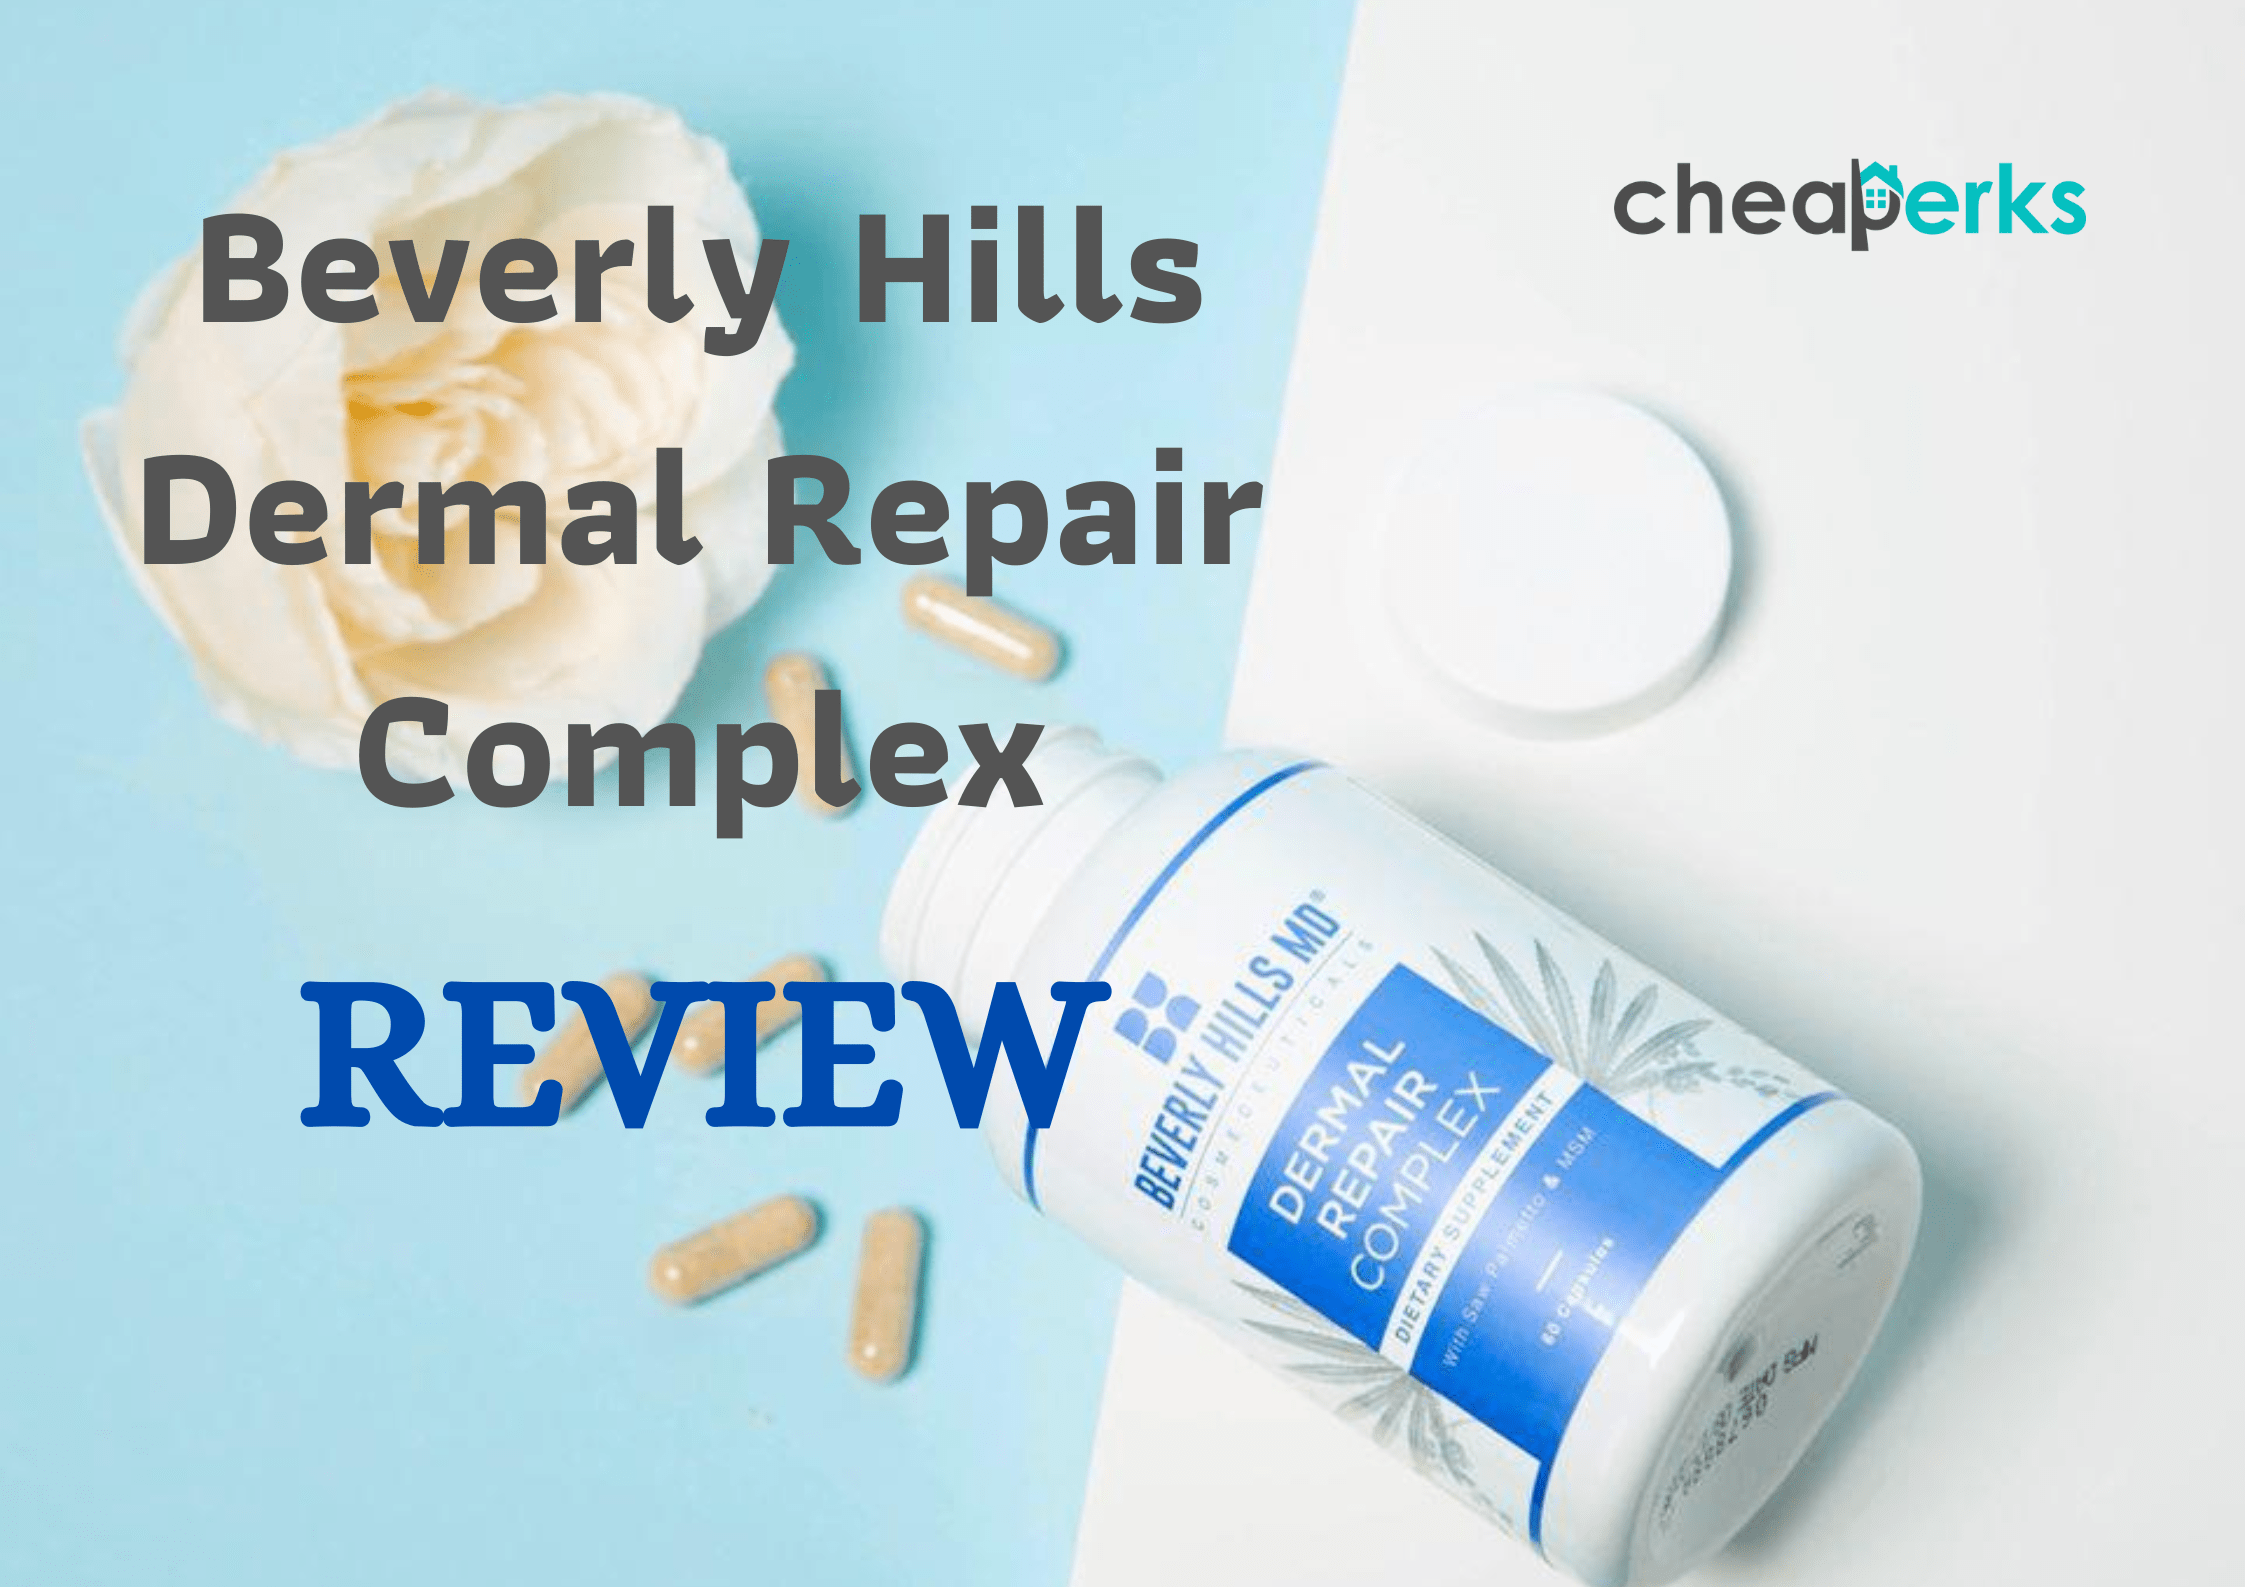 beverly hills dermal repair complex reviews